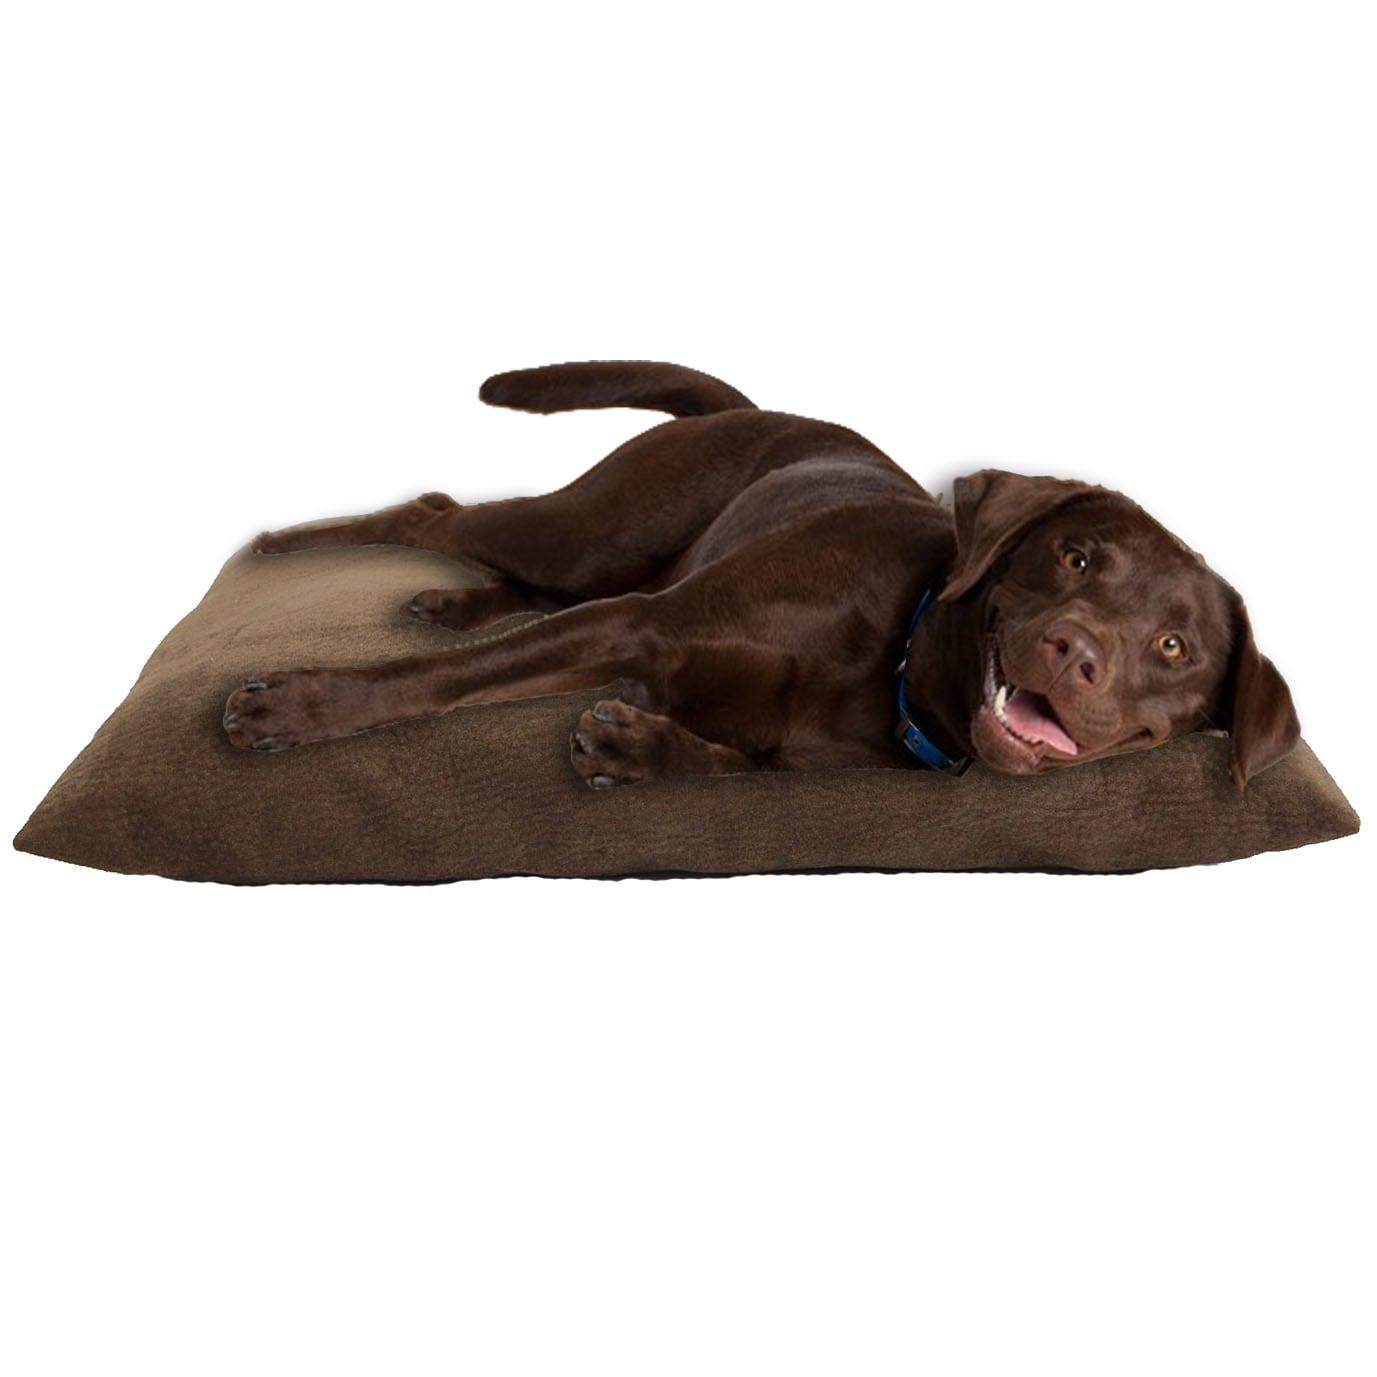 Fox RestPet 36-inch Mocha Brown Pet Bed (Pet Bed), Size M...